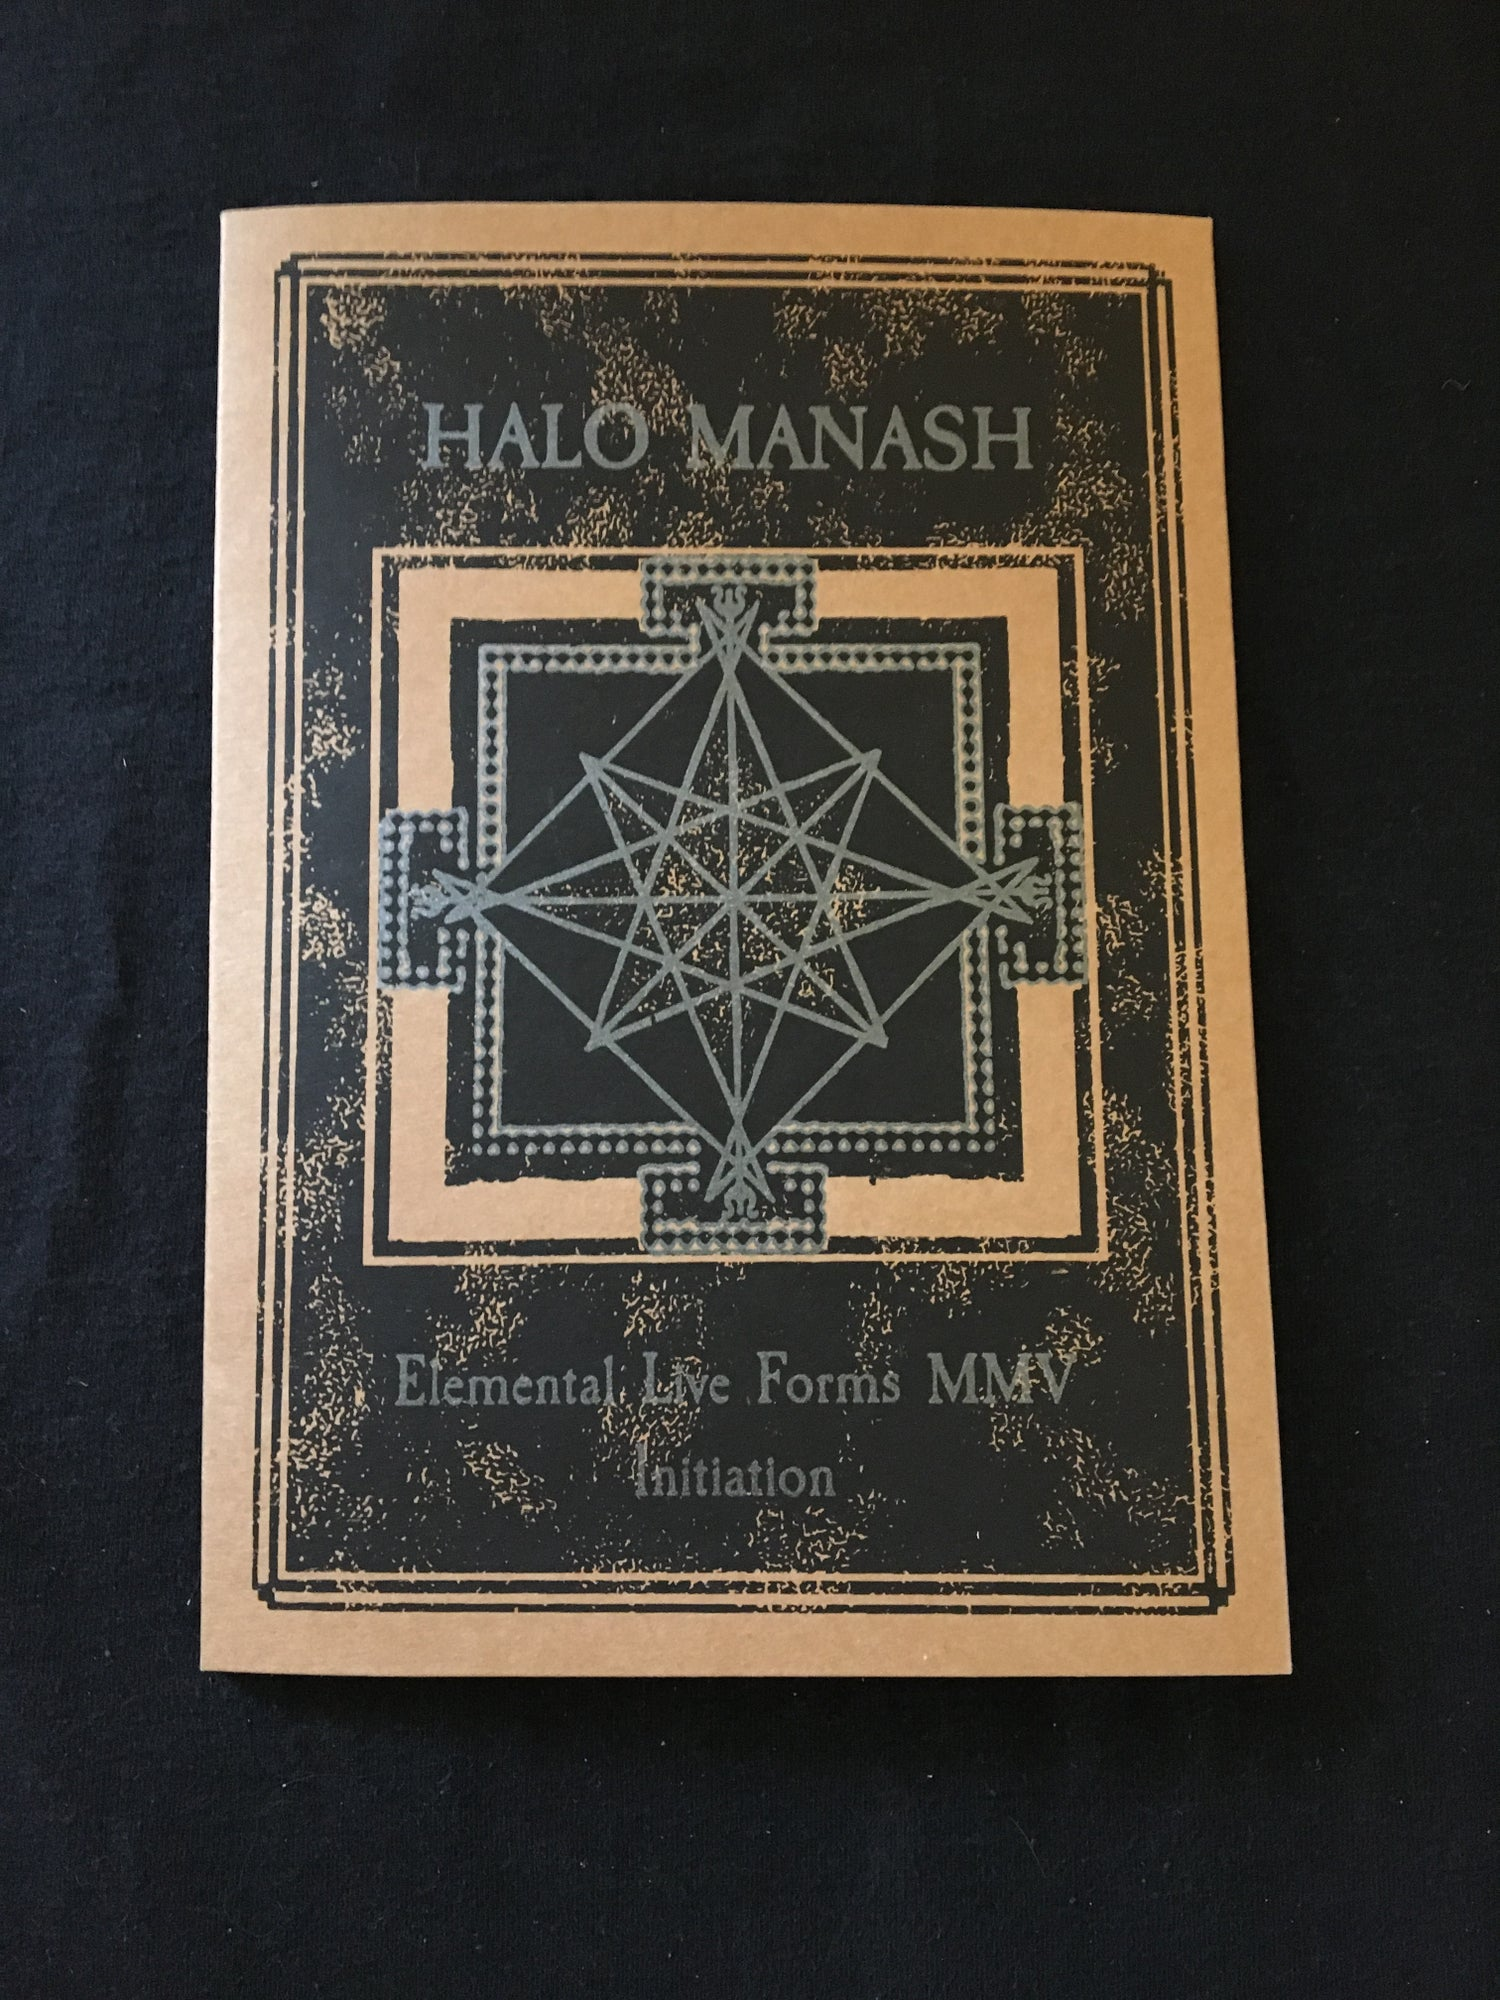 Halo Manash - Elemental Live Forms CD (Aural Hypnox)